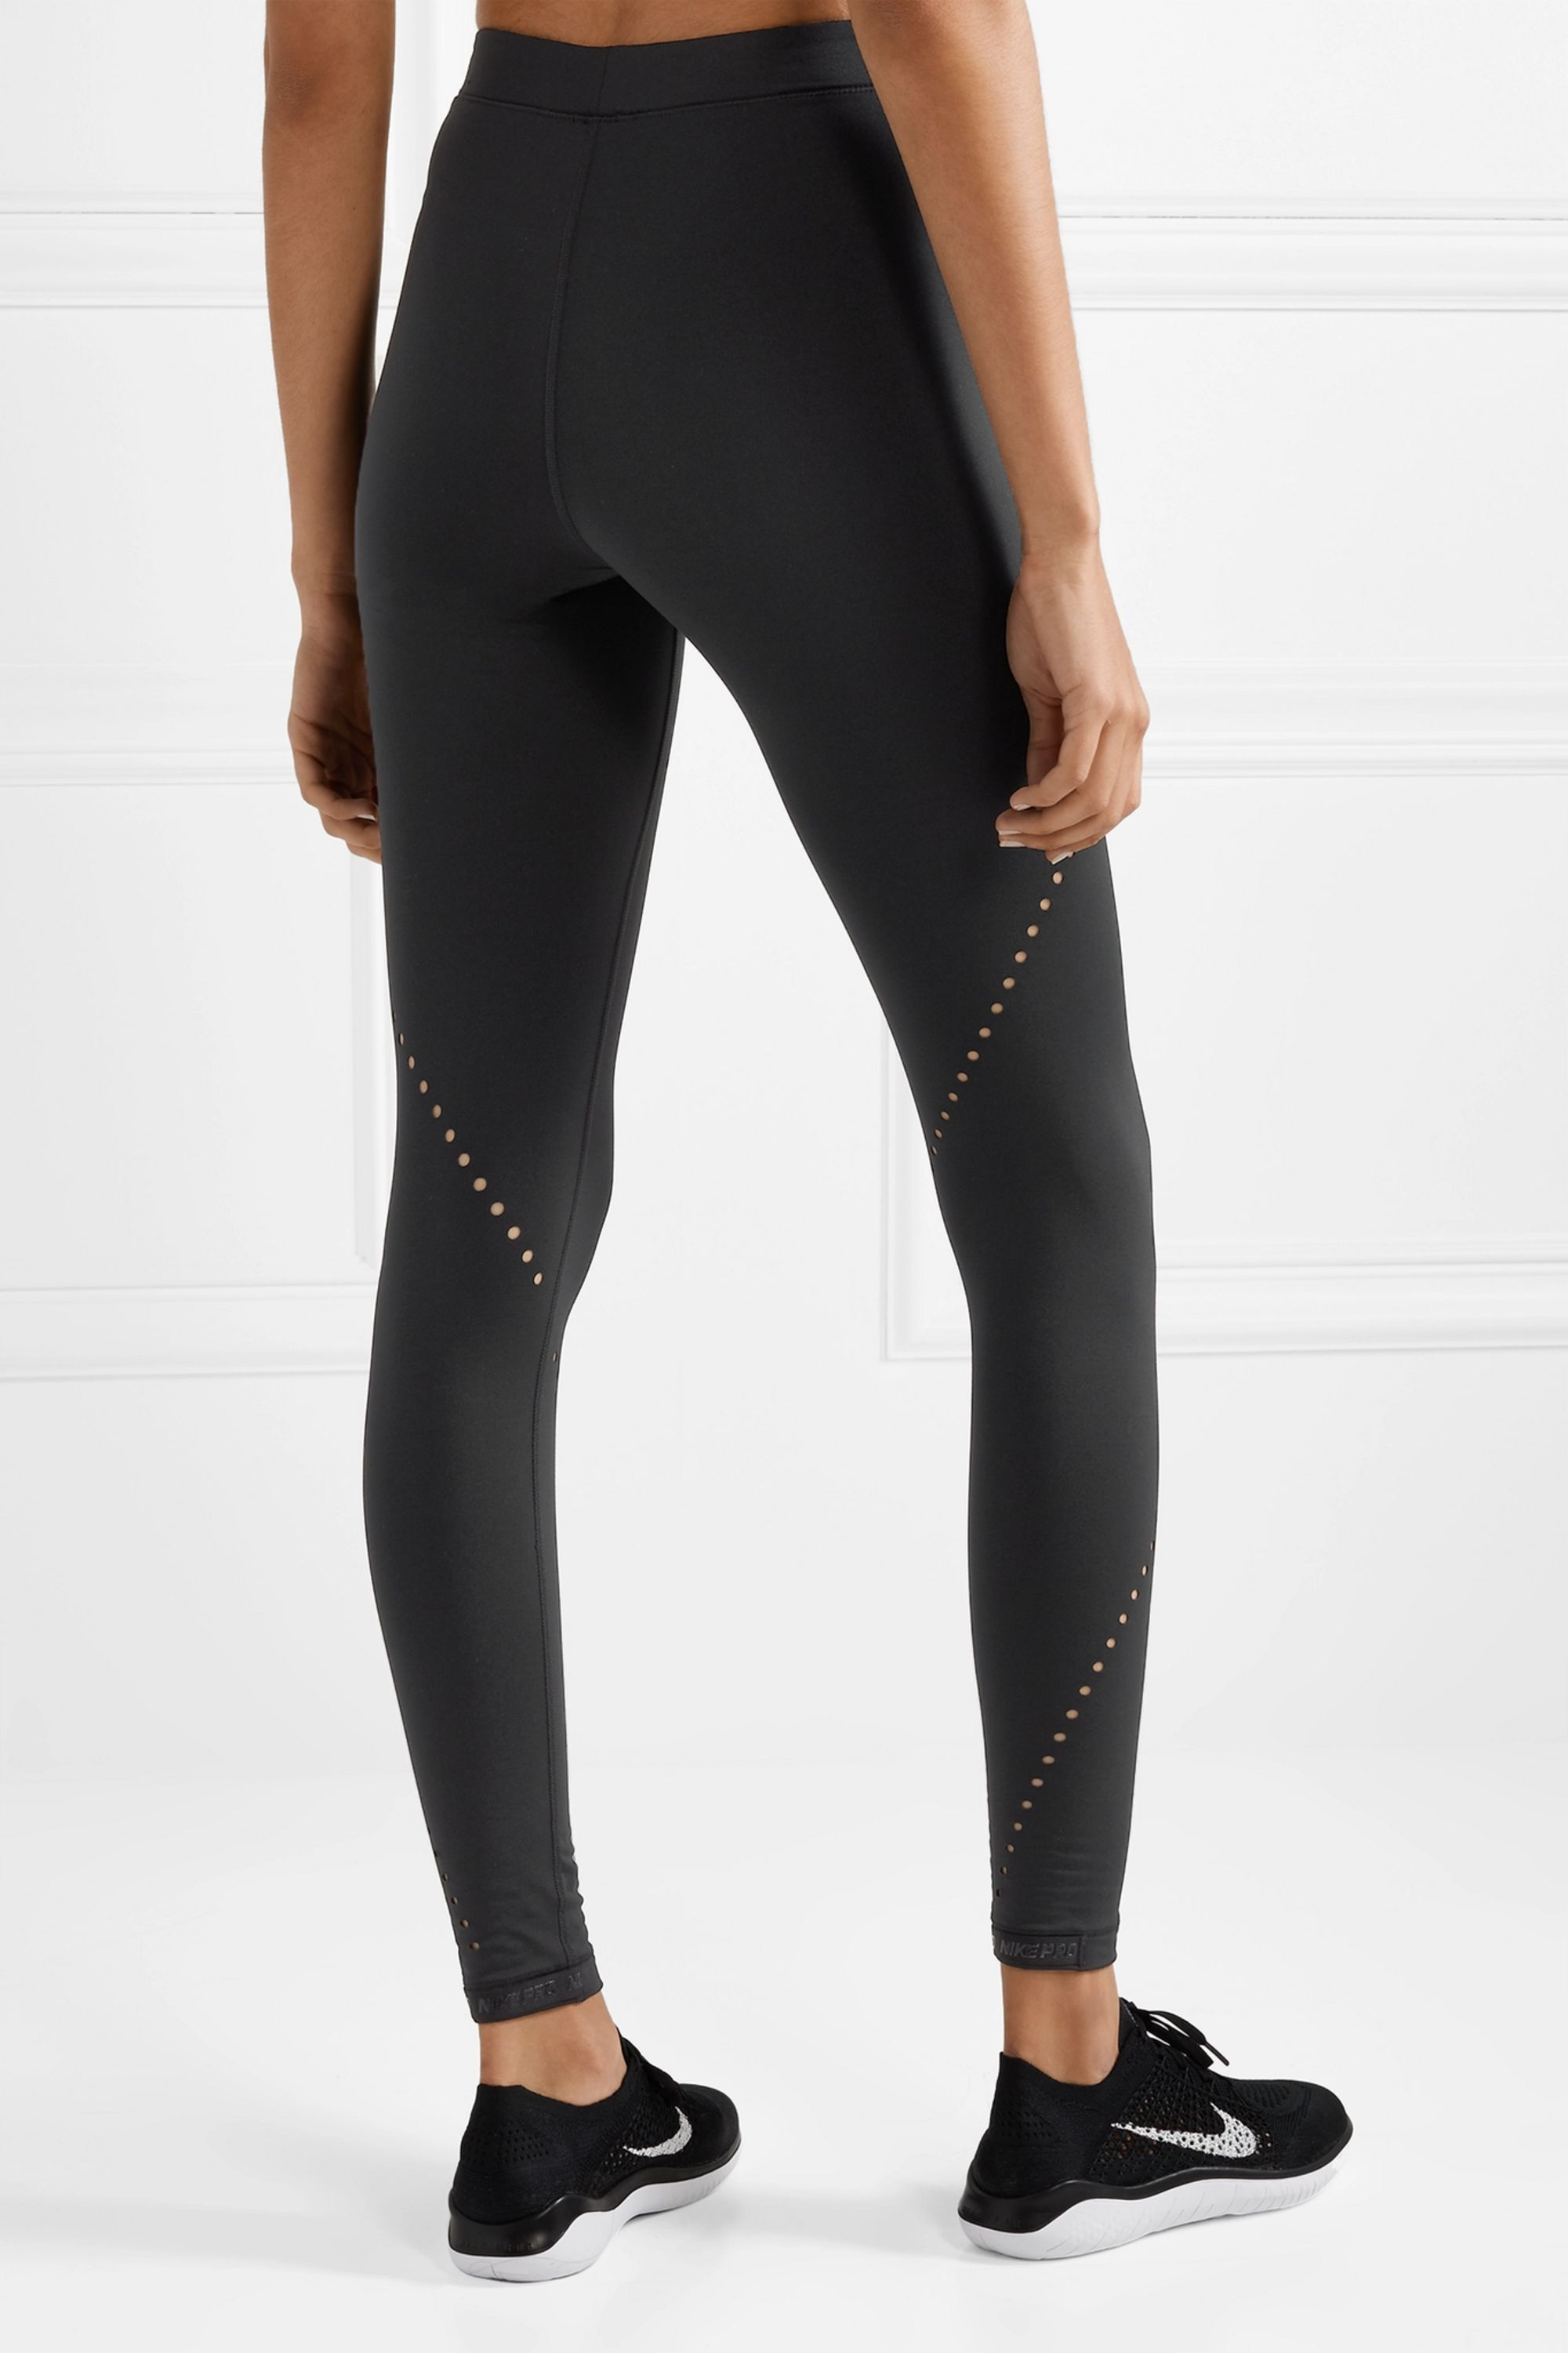 Nike Pro Hyperwarm perforated stretch leggings